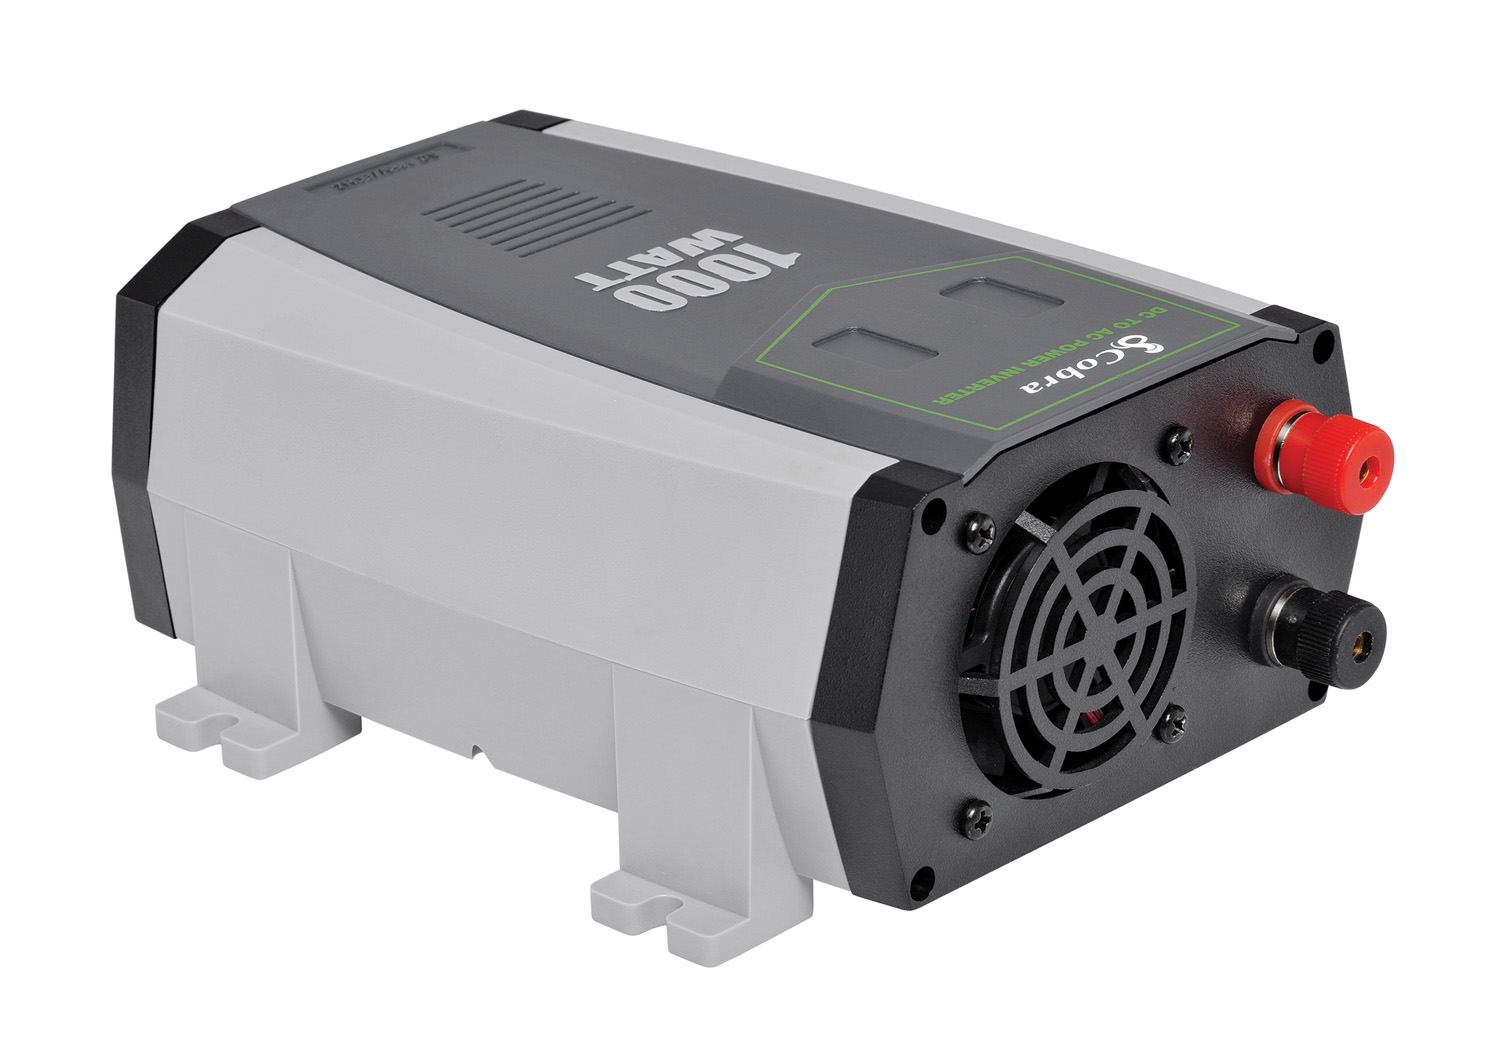 COBRA CPI1090 1000 - 2000 WATT MODIFIED SINEWAVE POWER INVERTER WITH 2 GROUNDED AC OUTLETS - INCLUDES BATTERY CABLES